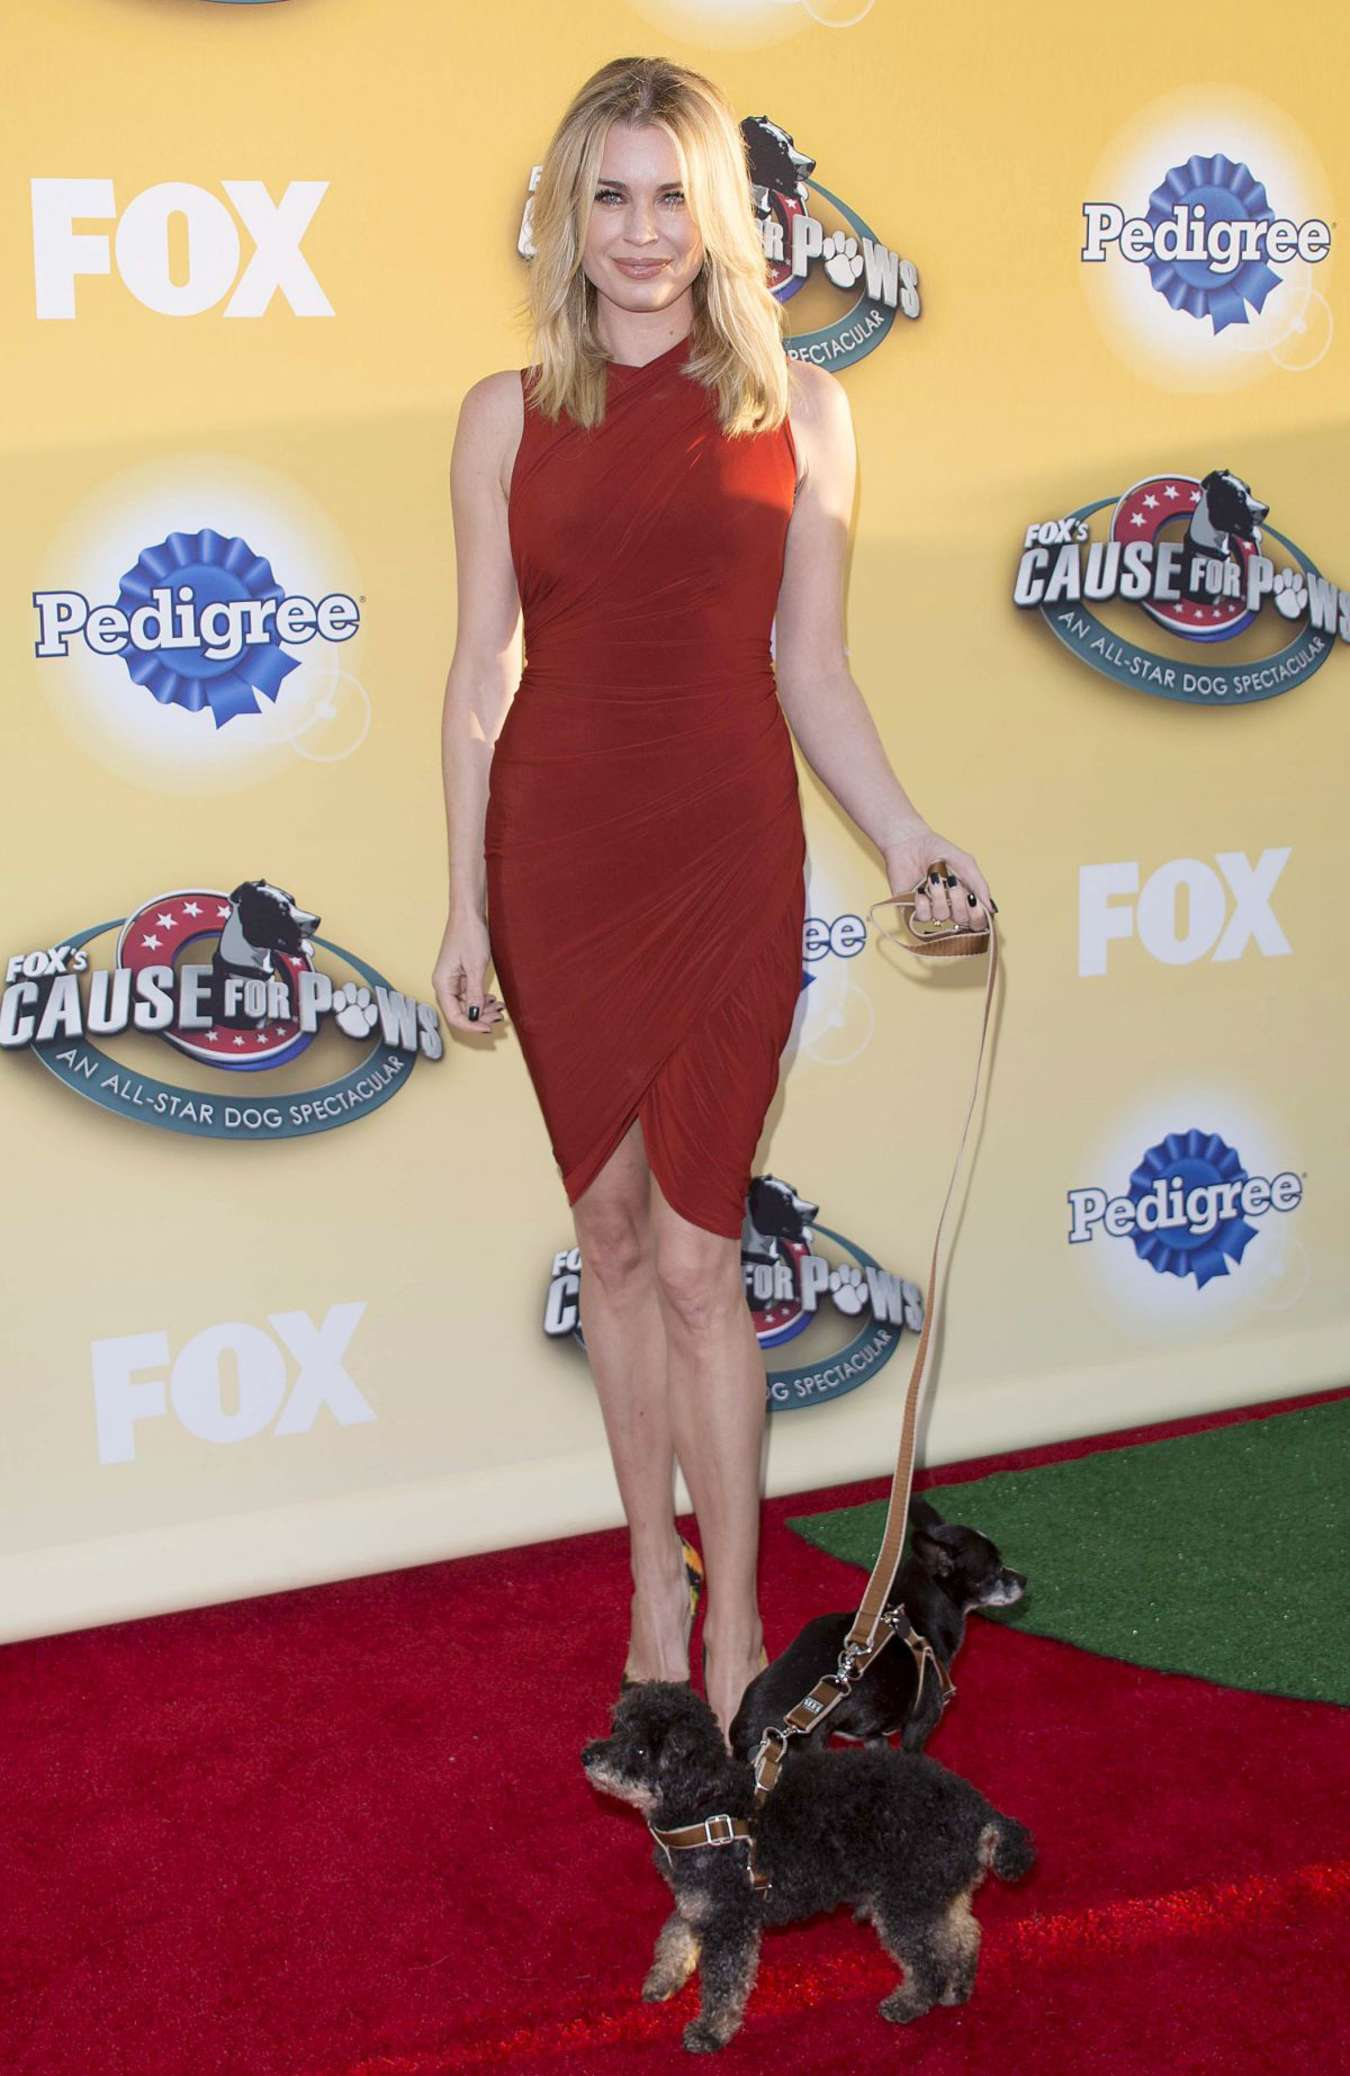 Rebecca Romijn FOXs Cause For Paws An All-Star Dog Spectacular in Santa Monica